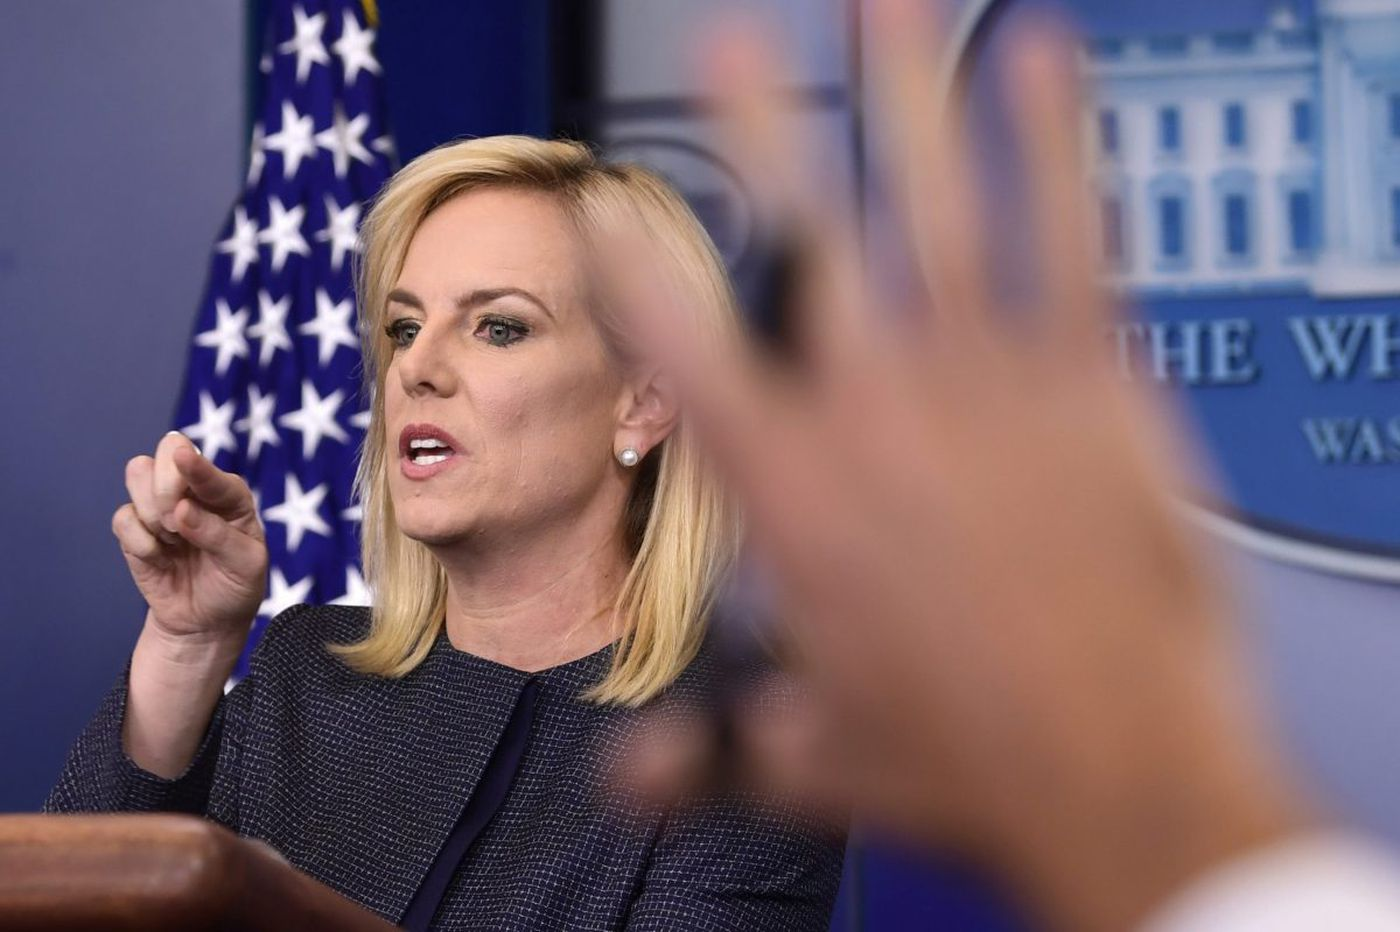 Nielsen becomes public face of Trump's migrant family separation policy